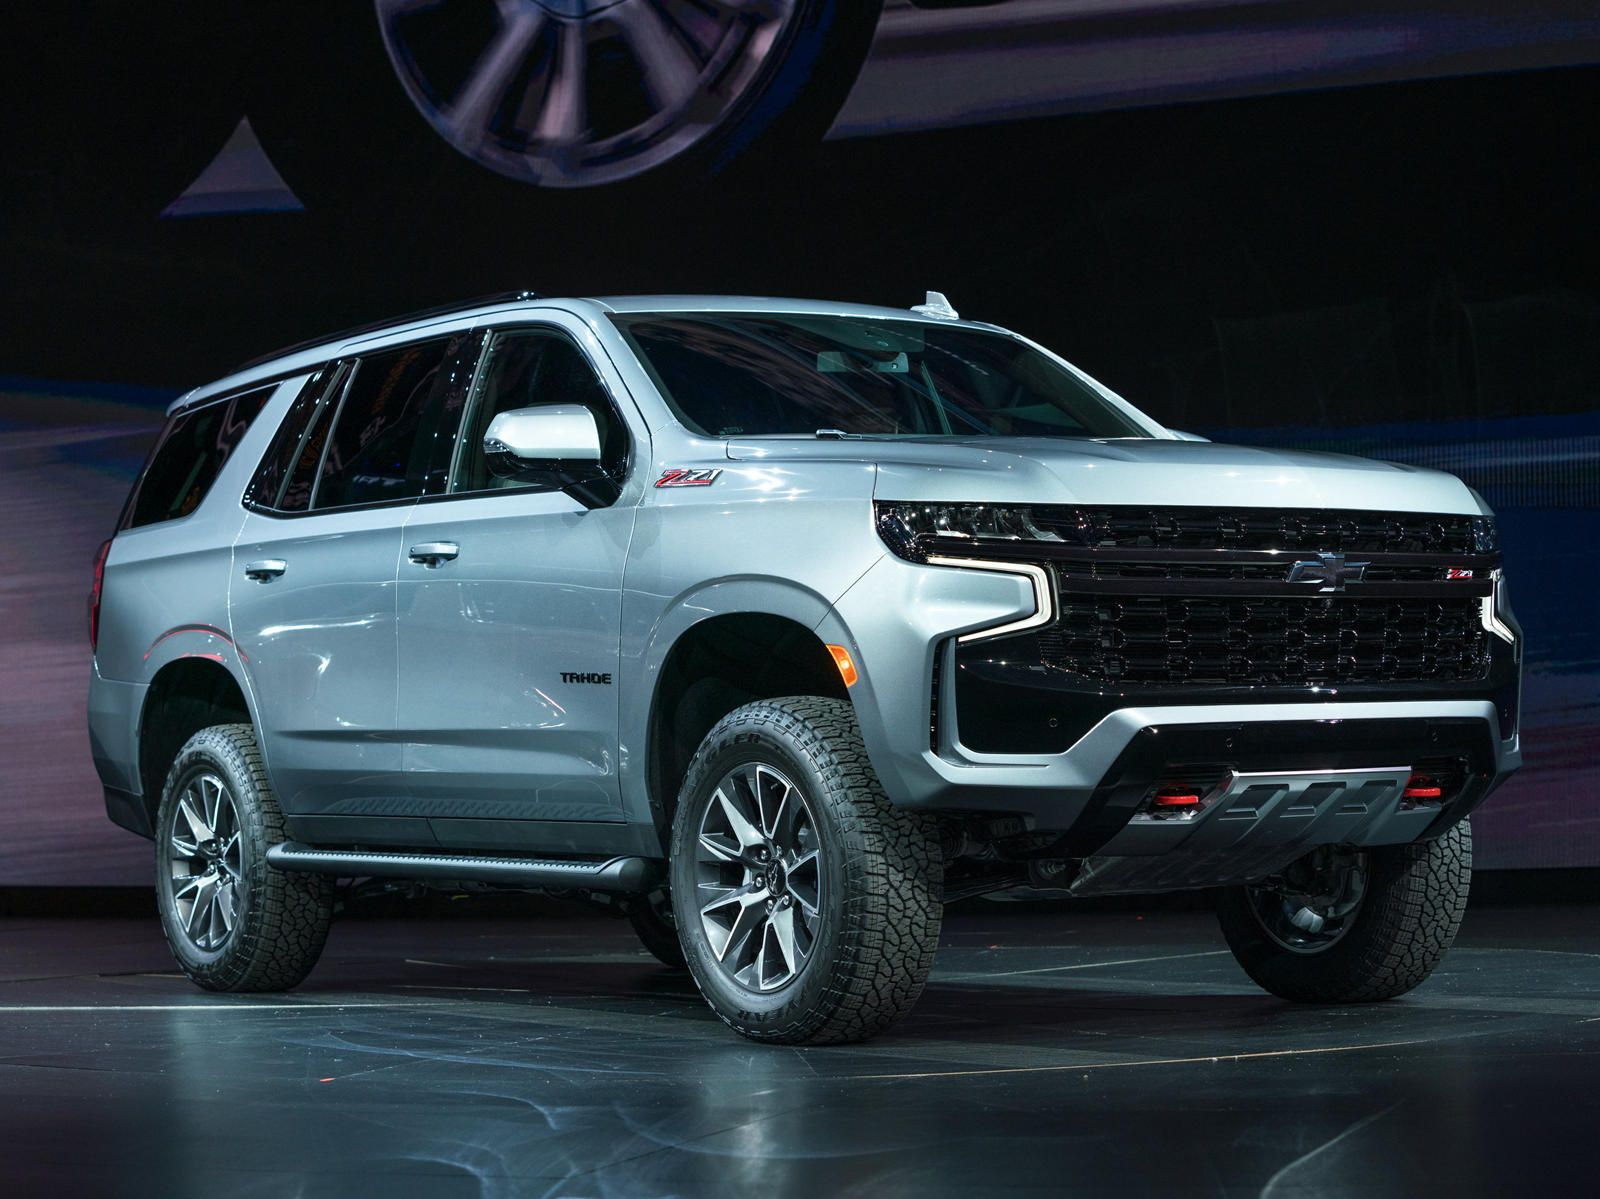 2021 Chevrolet Tahoe Review Trims Specs And Price Carbuzz In